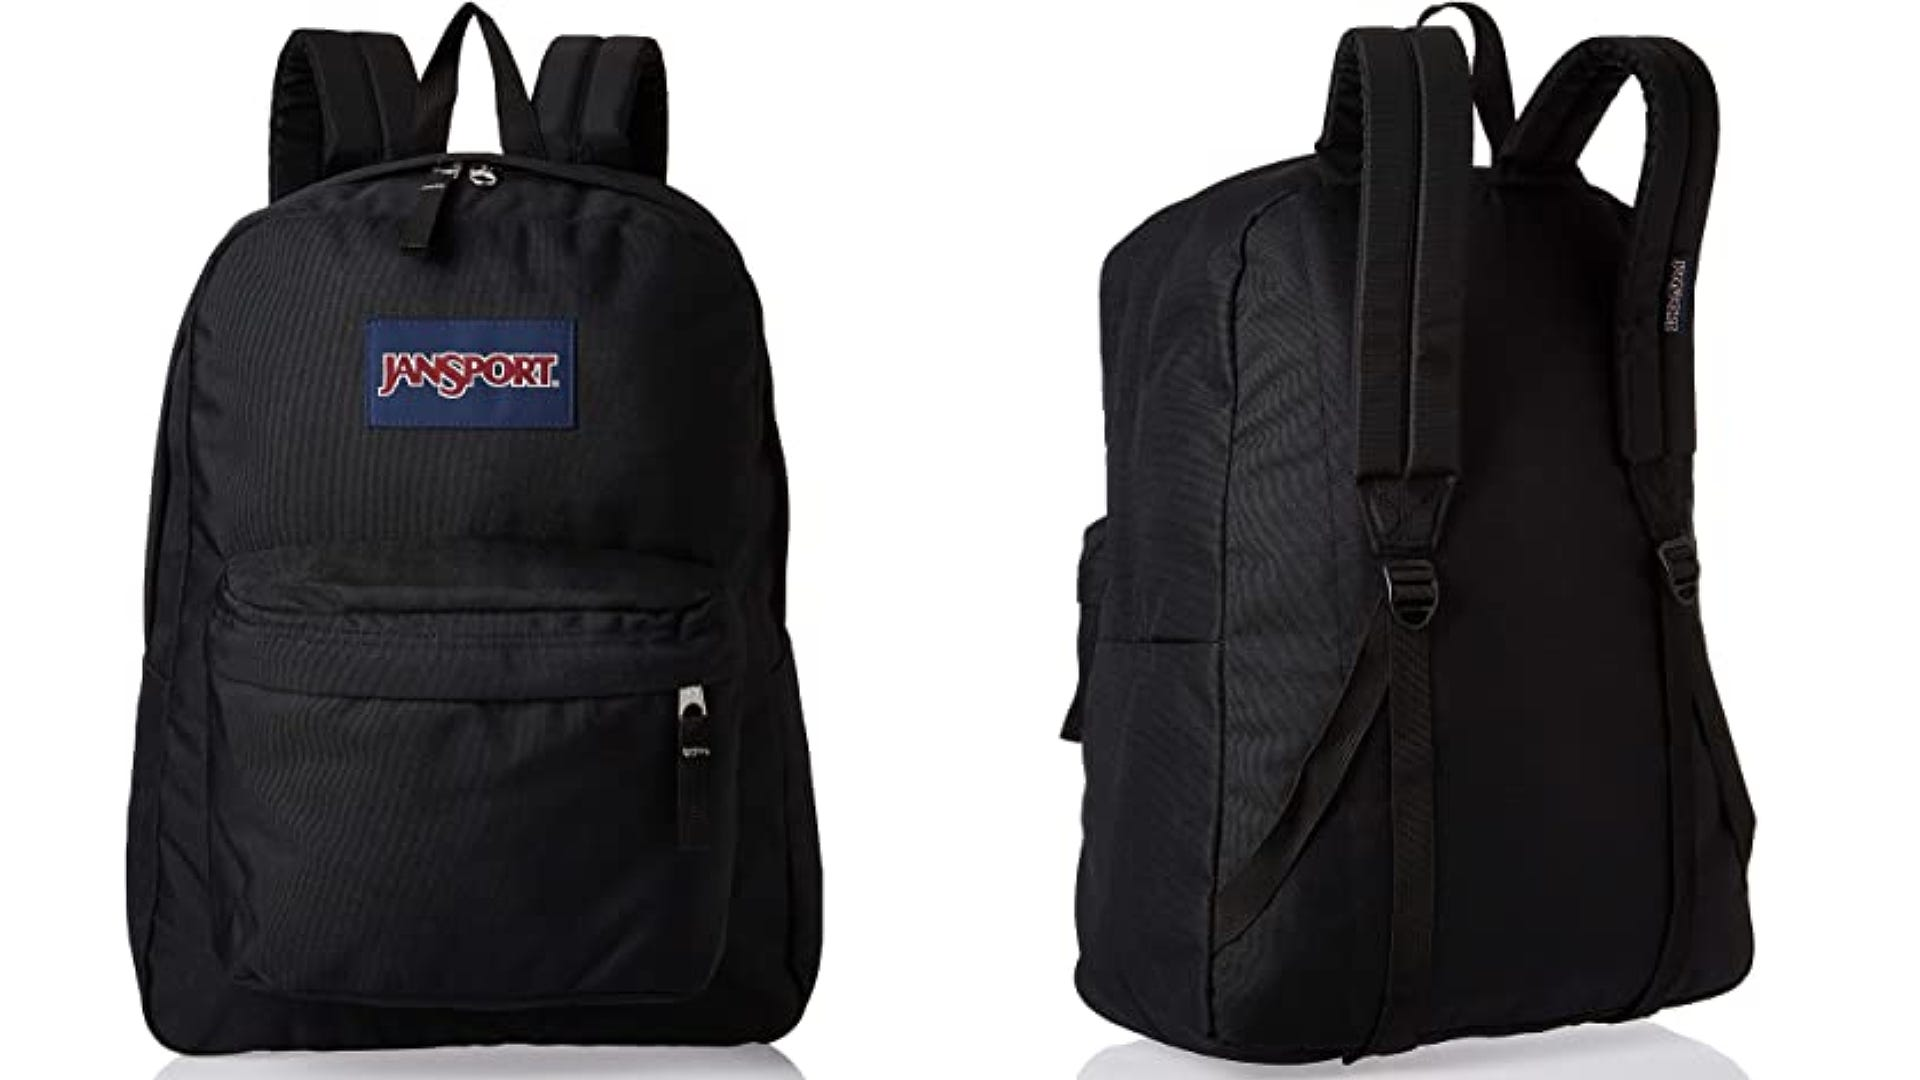 A front and back view of a black backpack.